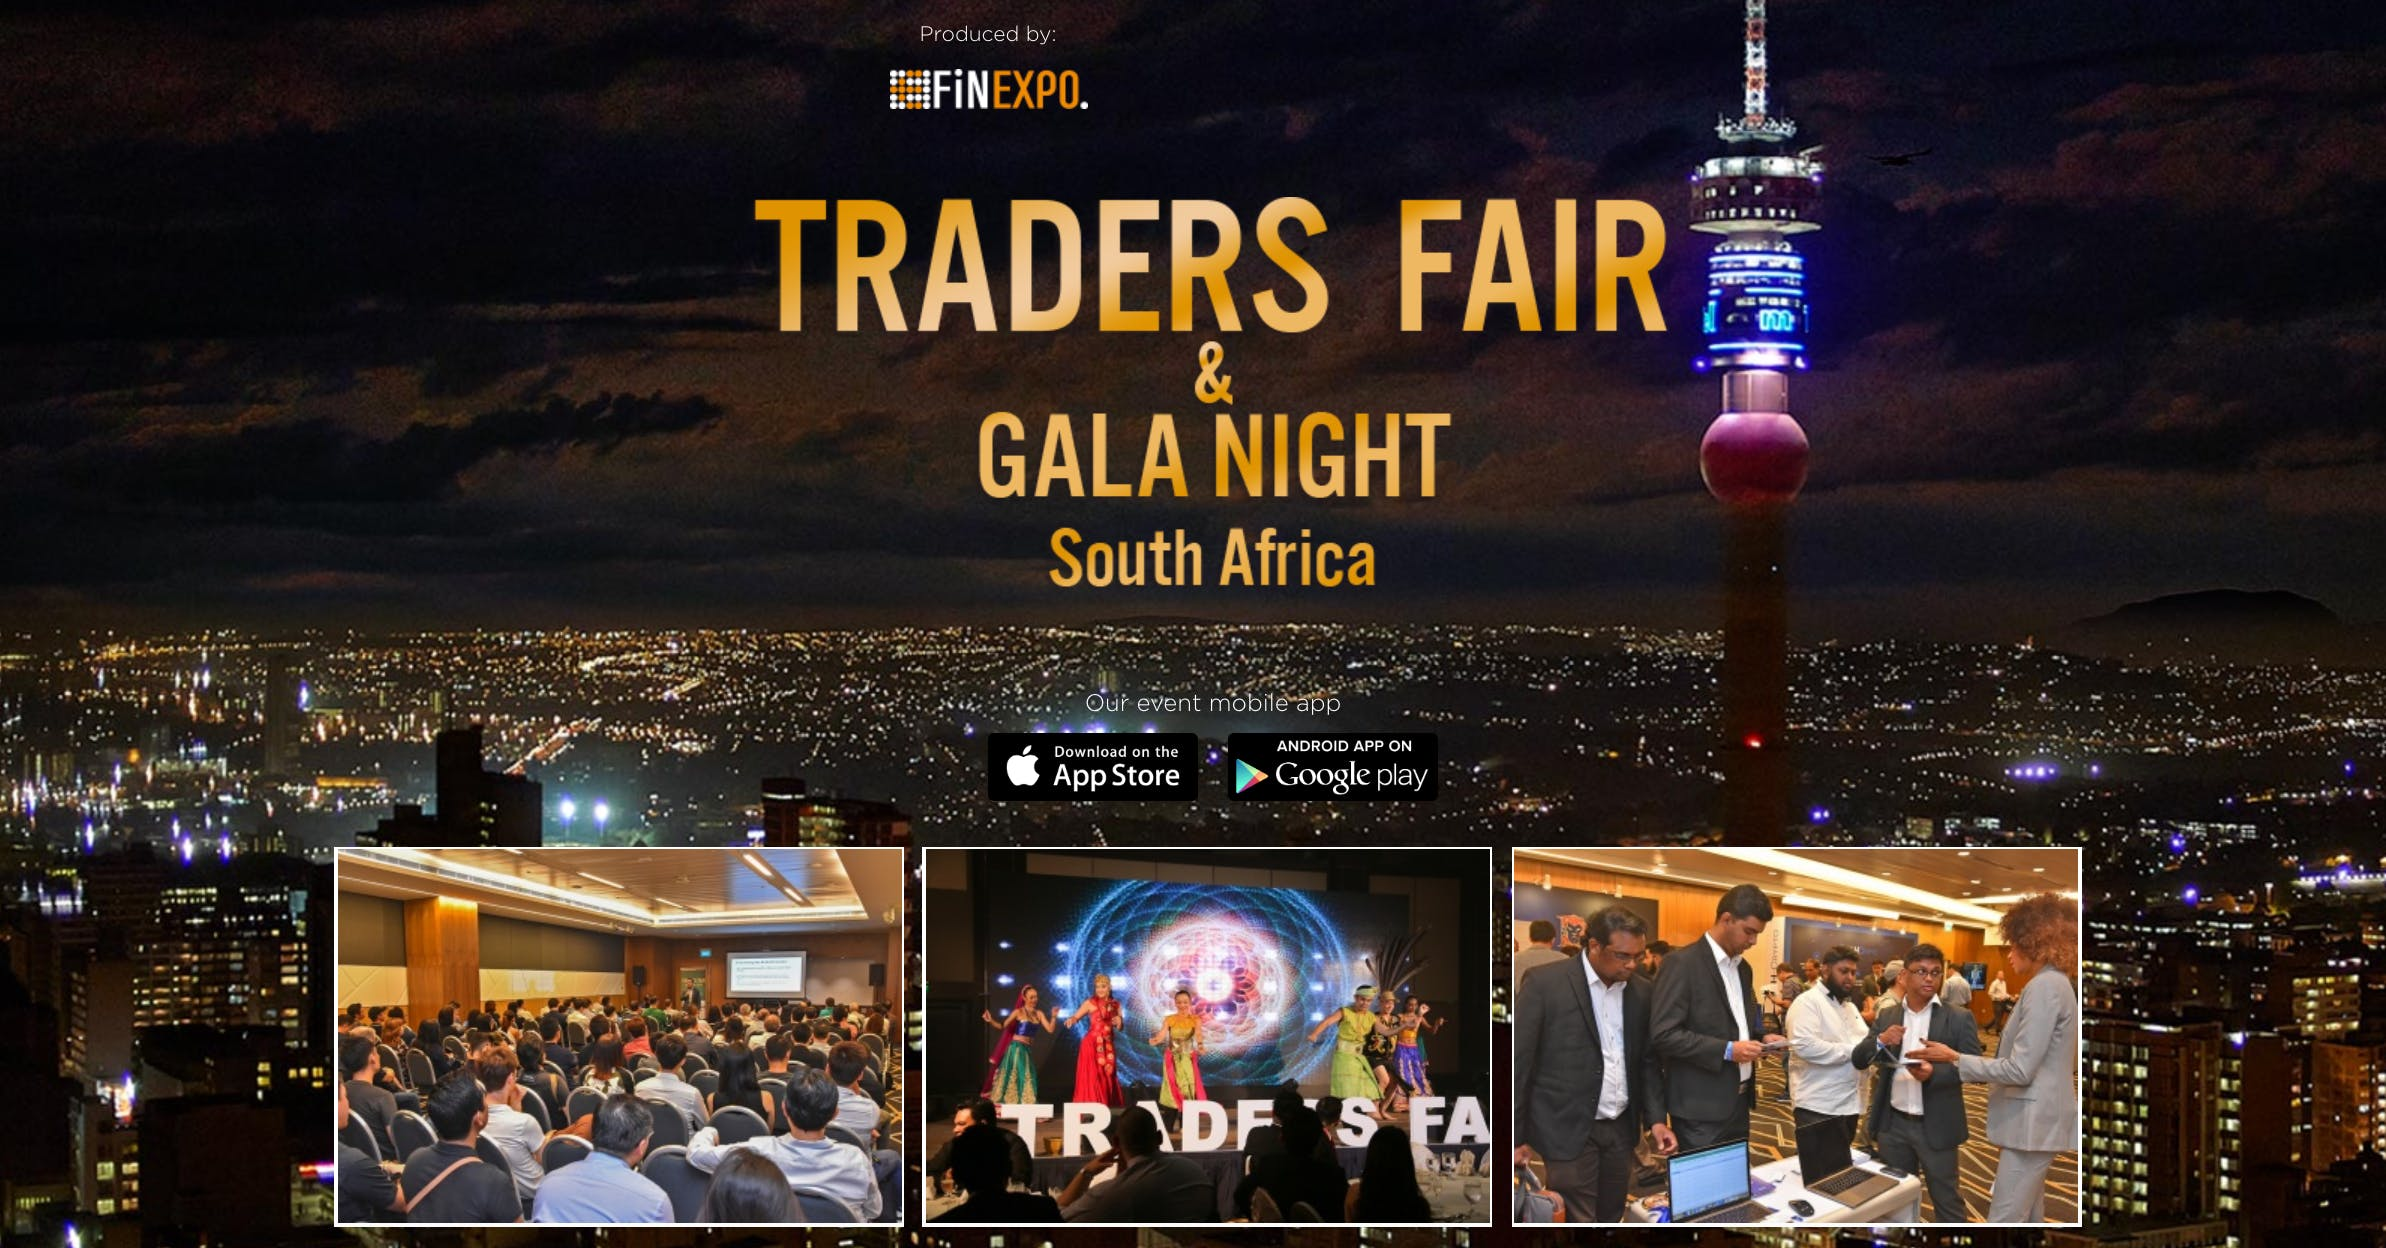 Traders Fair 2019 - South Africa (Financial E